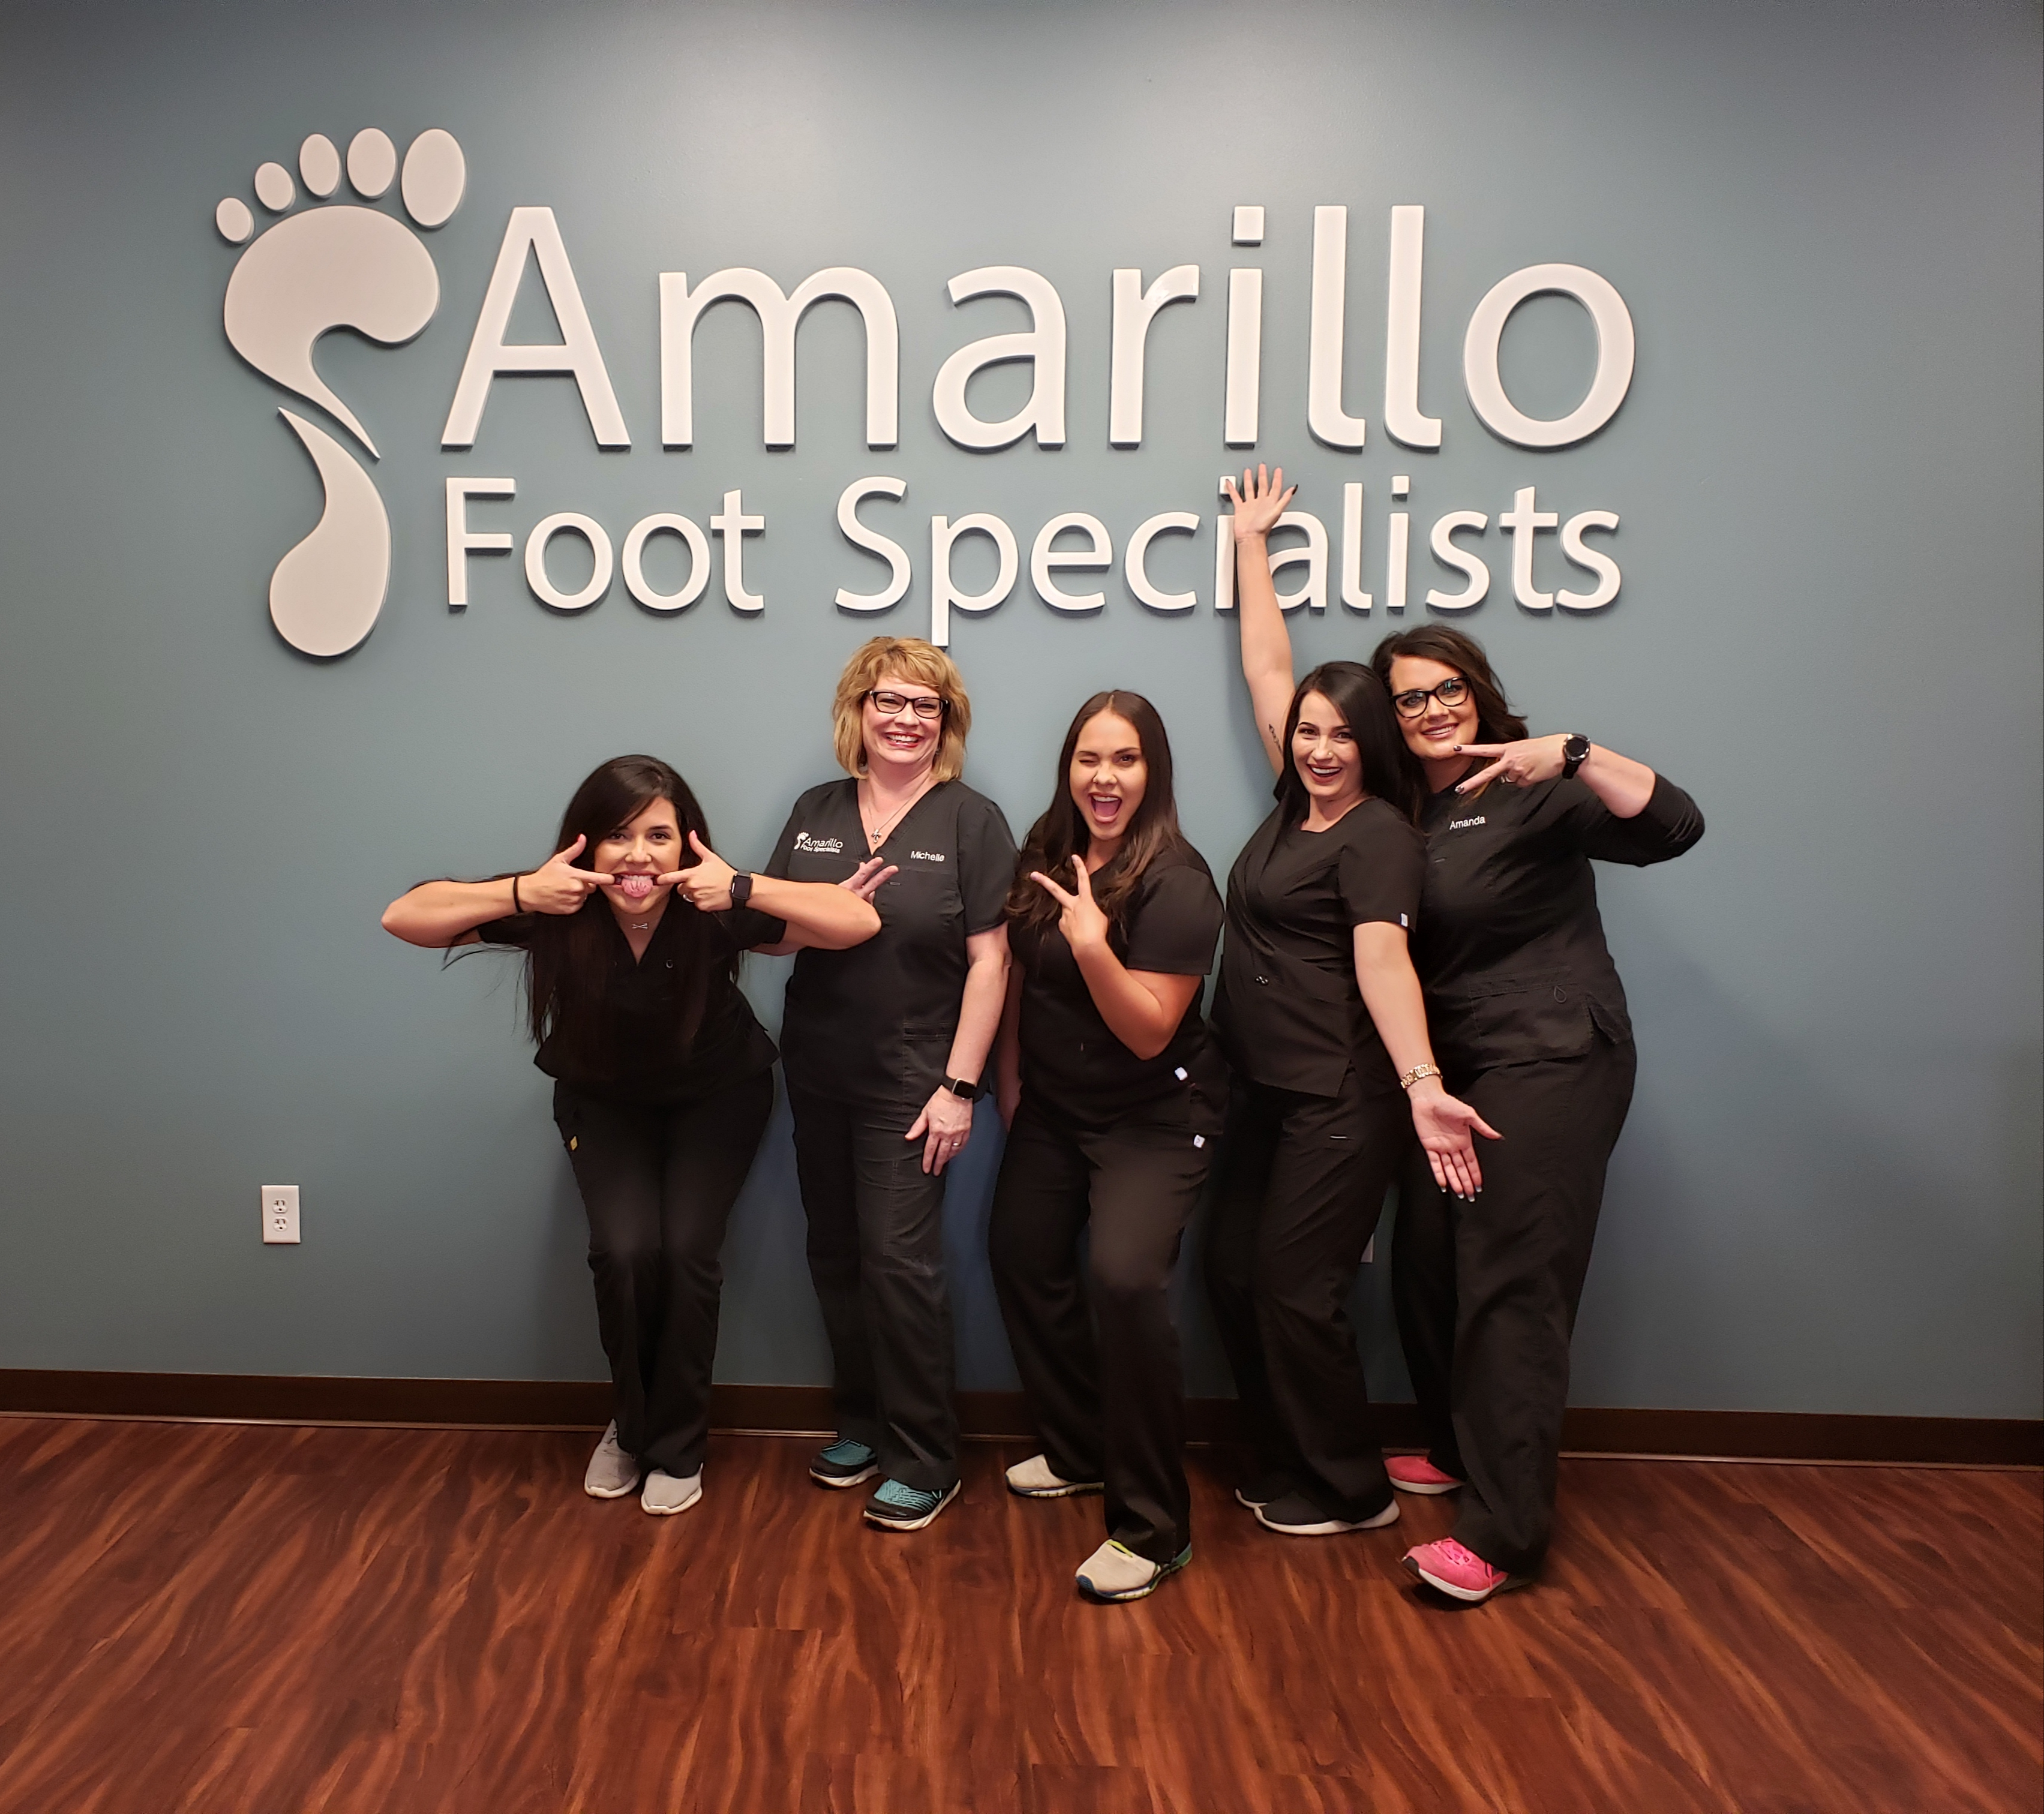 Amarillo Foot Specialists image 7